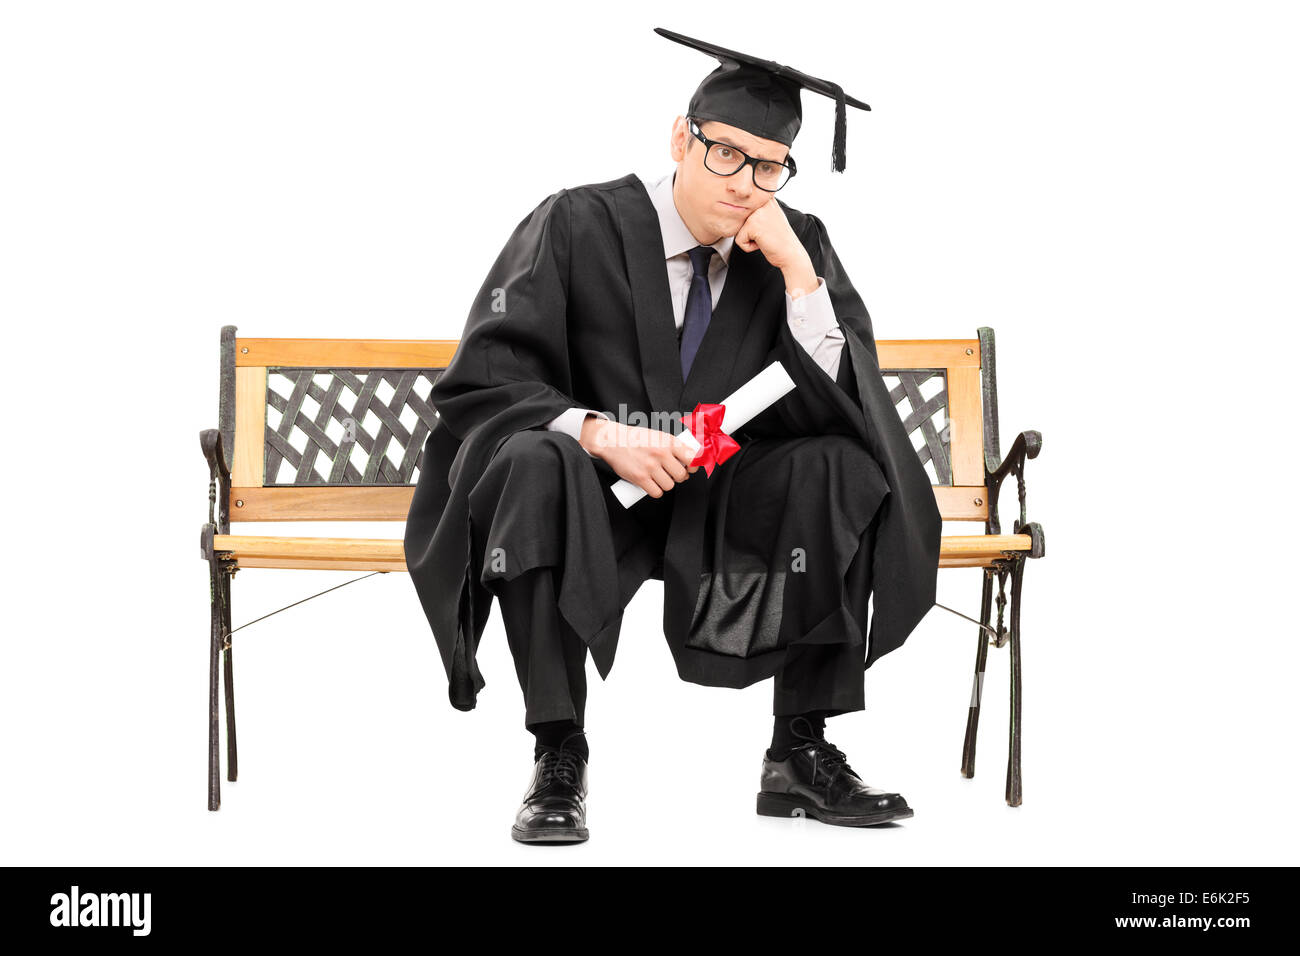 Angry college graduate holding a diploma isolated on white background - Stock Image